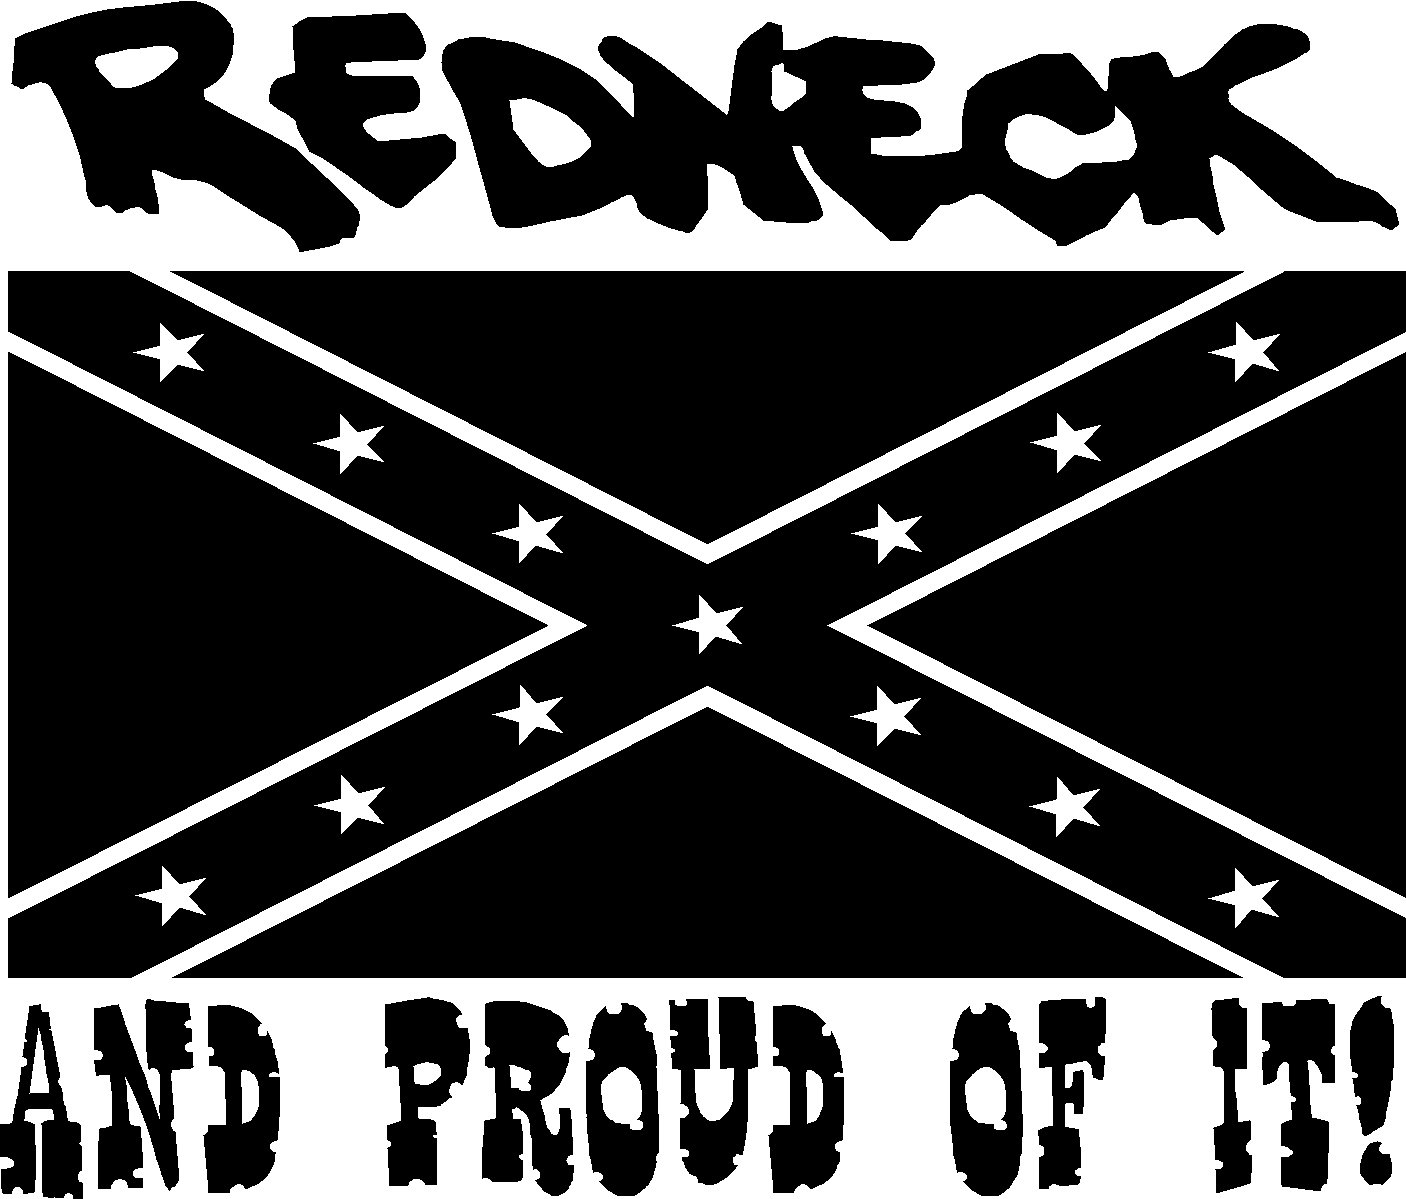 REDNECK AND PROUD OF IT VINYL DECAL STICKER